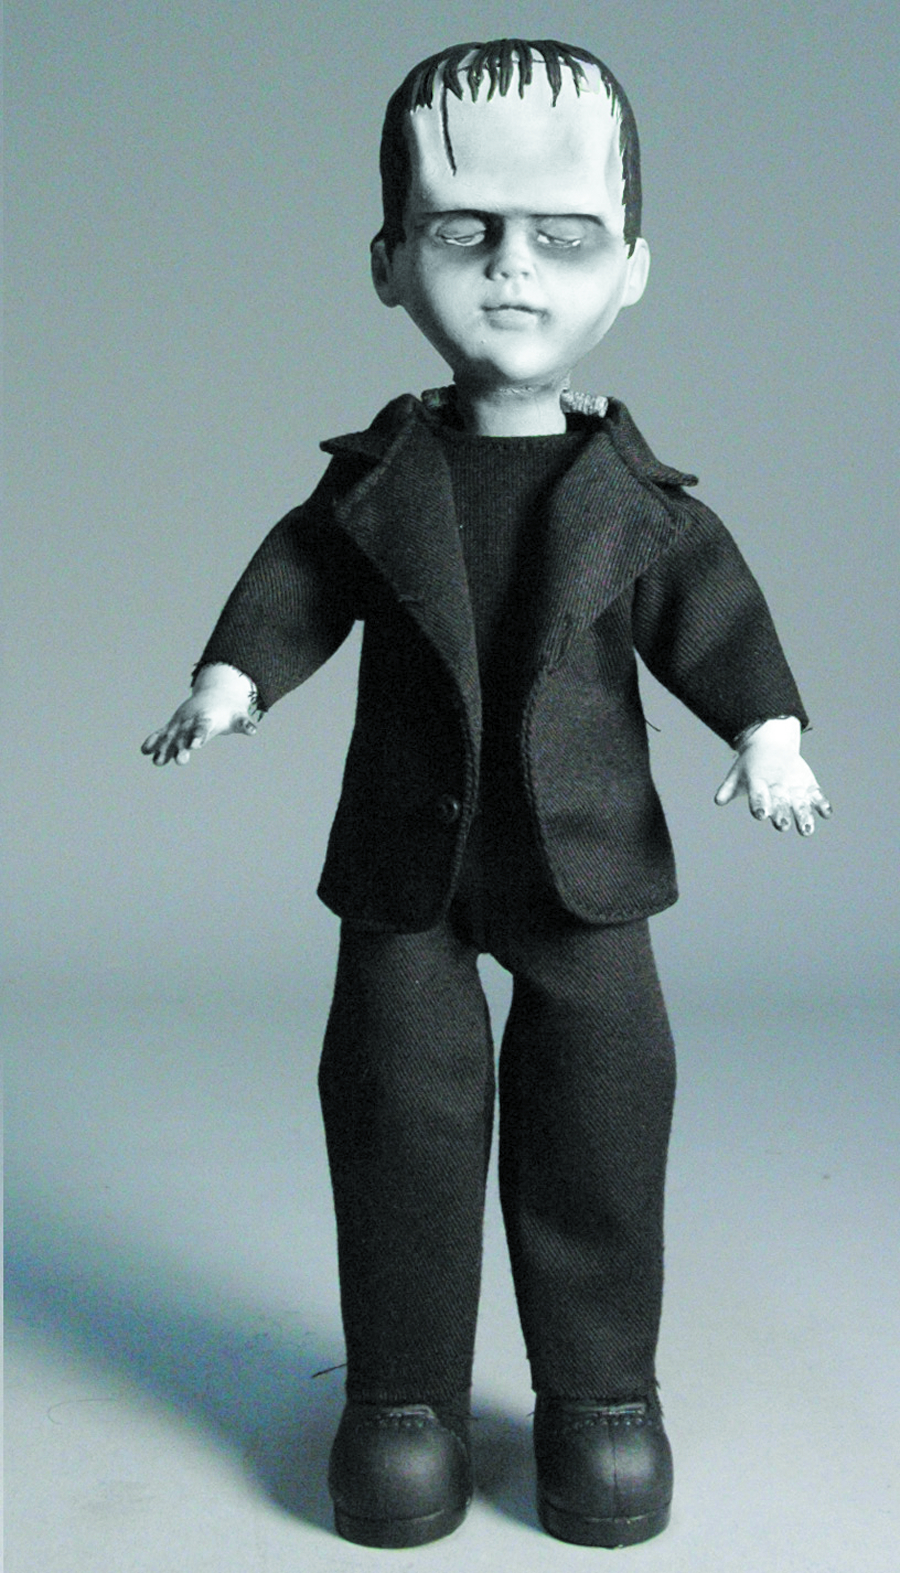 LIVING DEAD DOLLS FRANKENSTEIN B&W PX DOLL